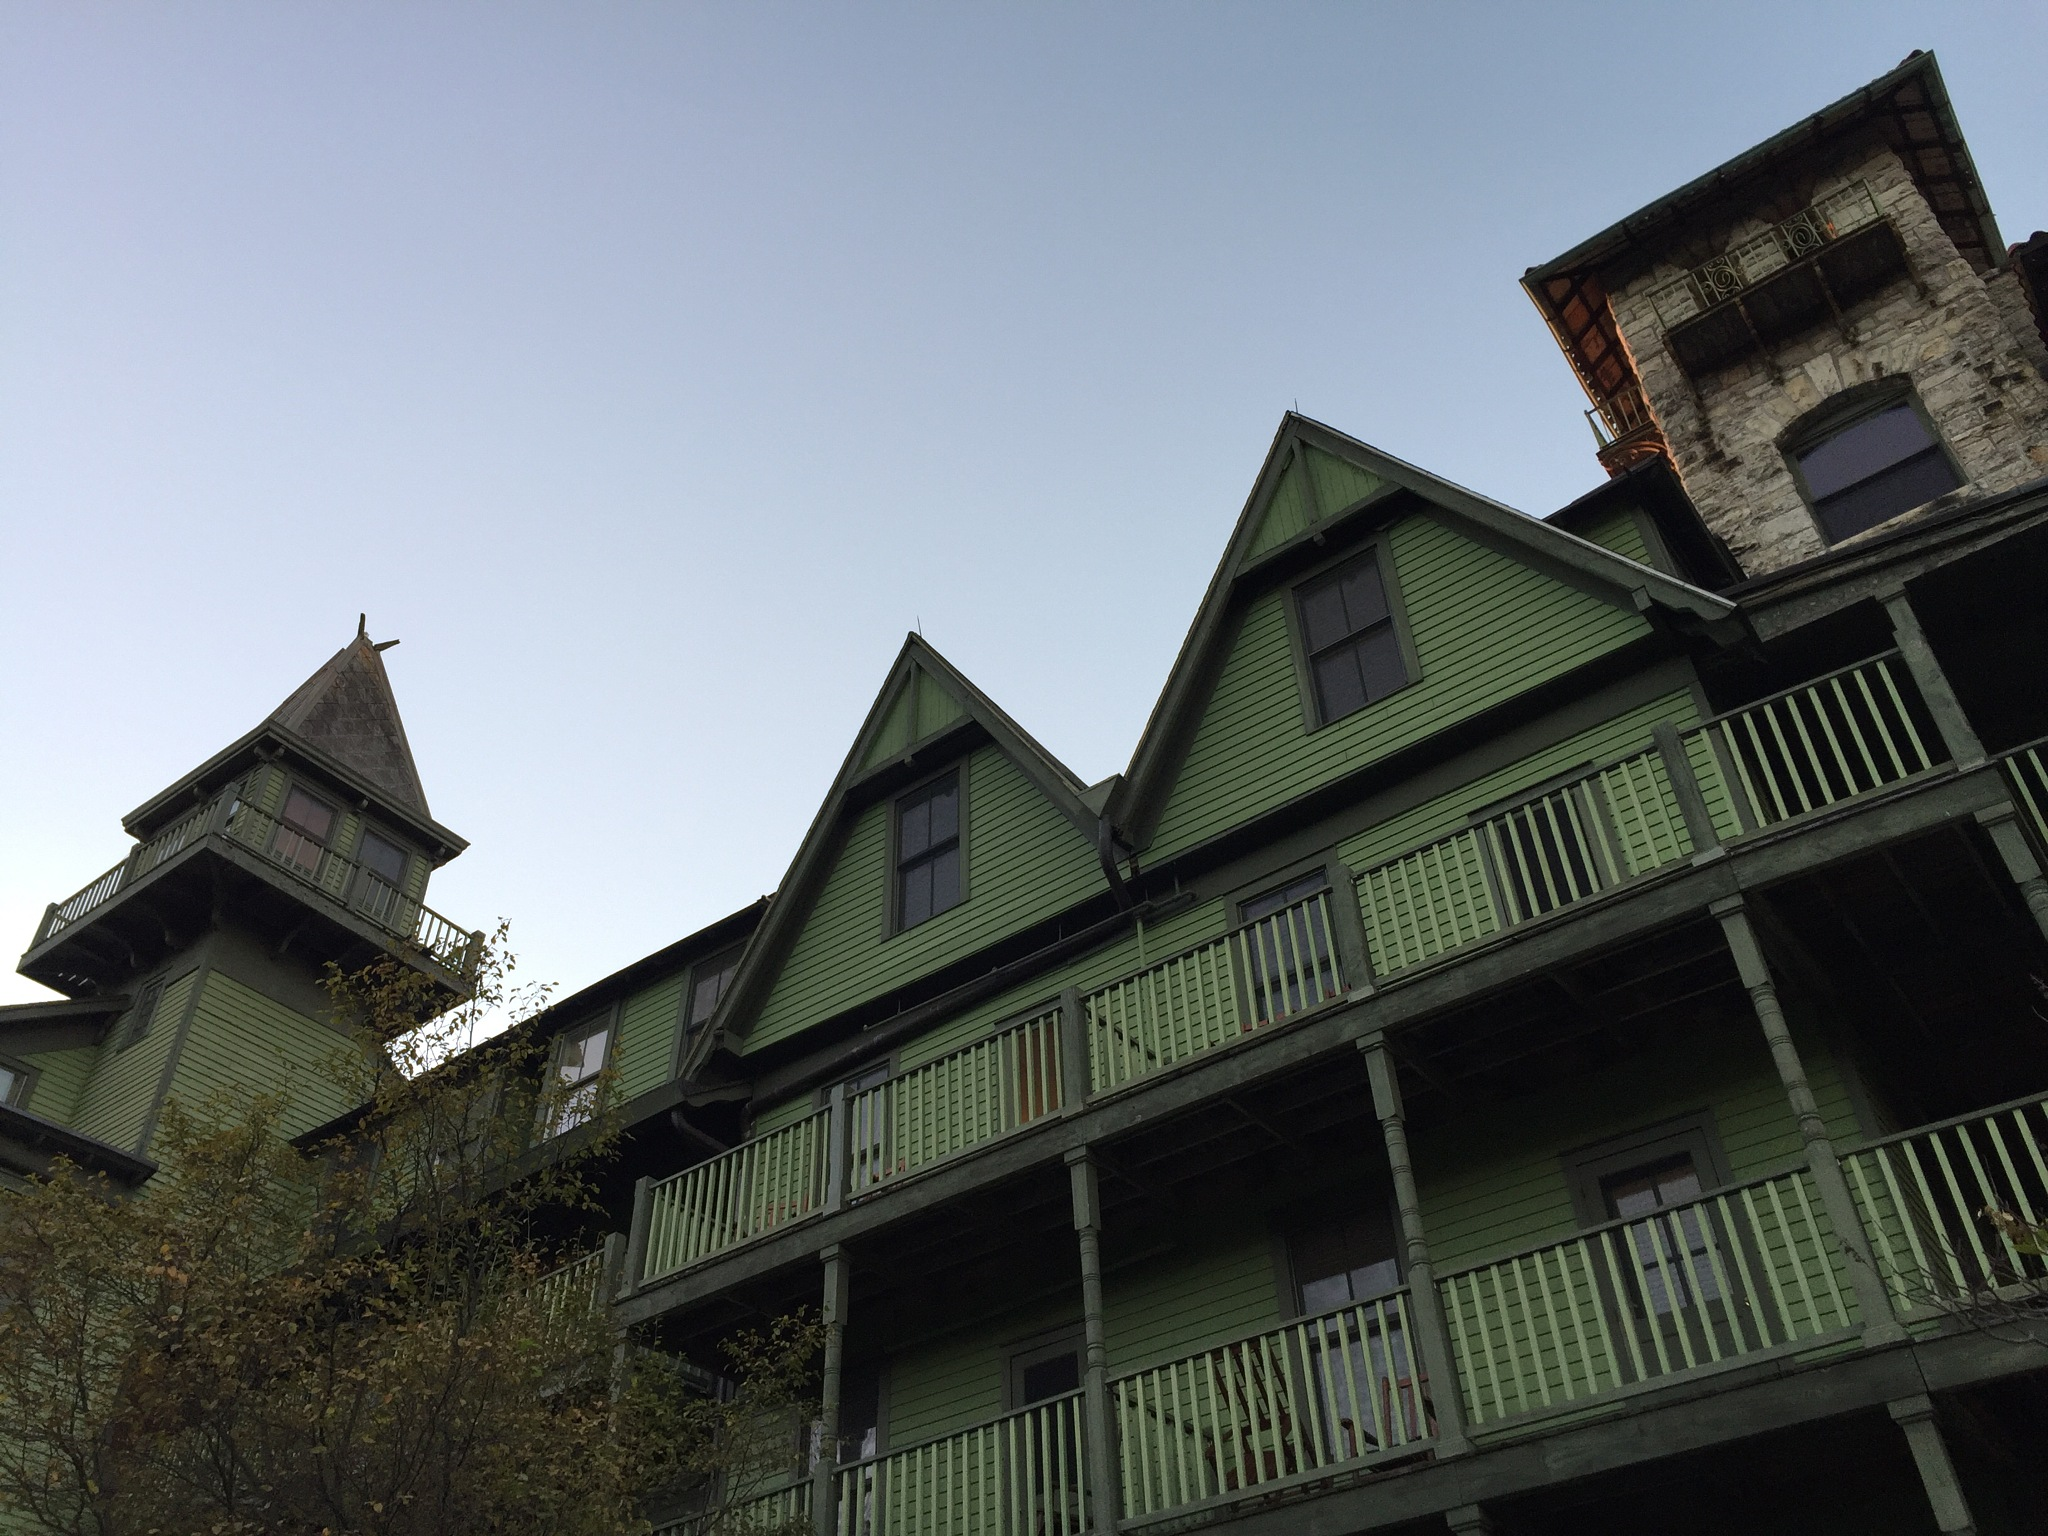 Mohonk Mountain House by brian.odonohue